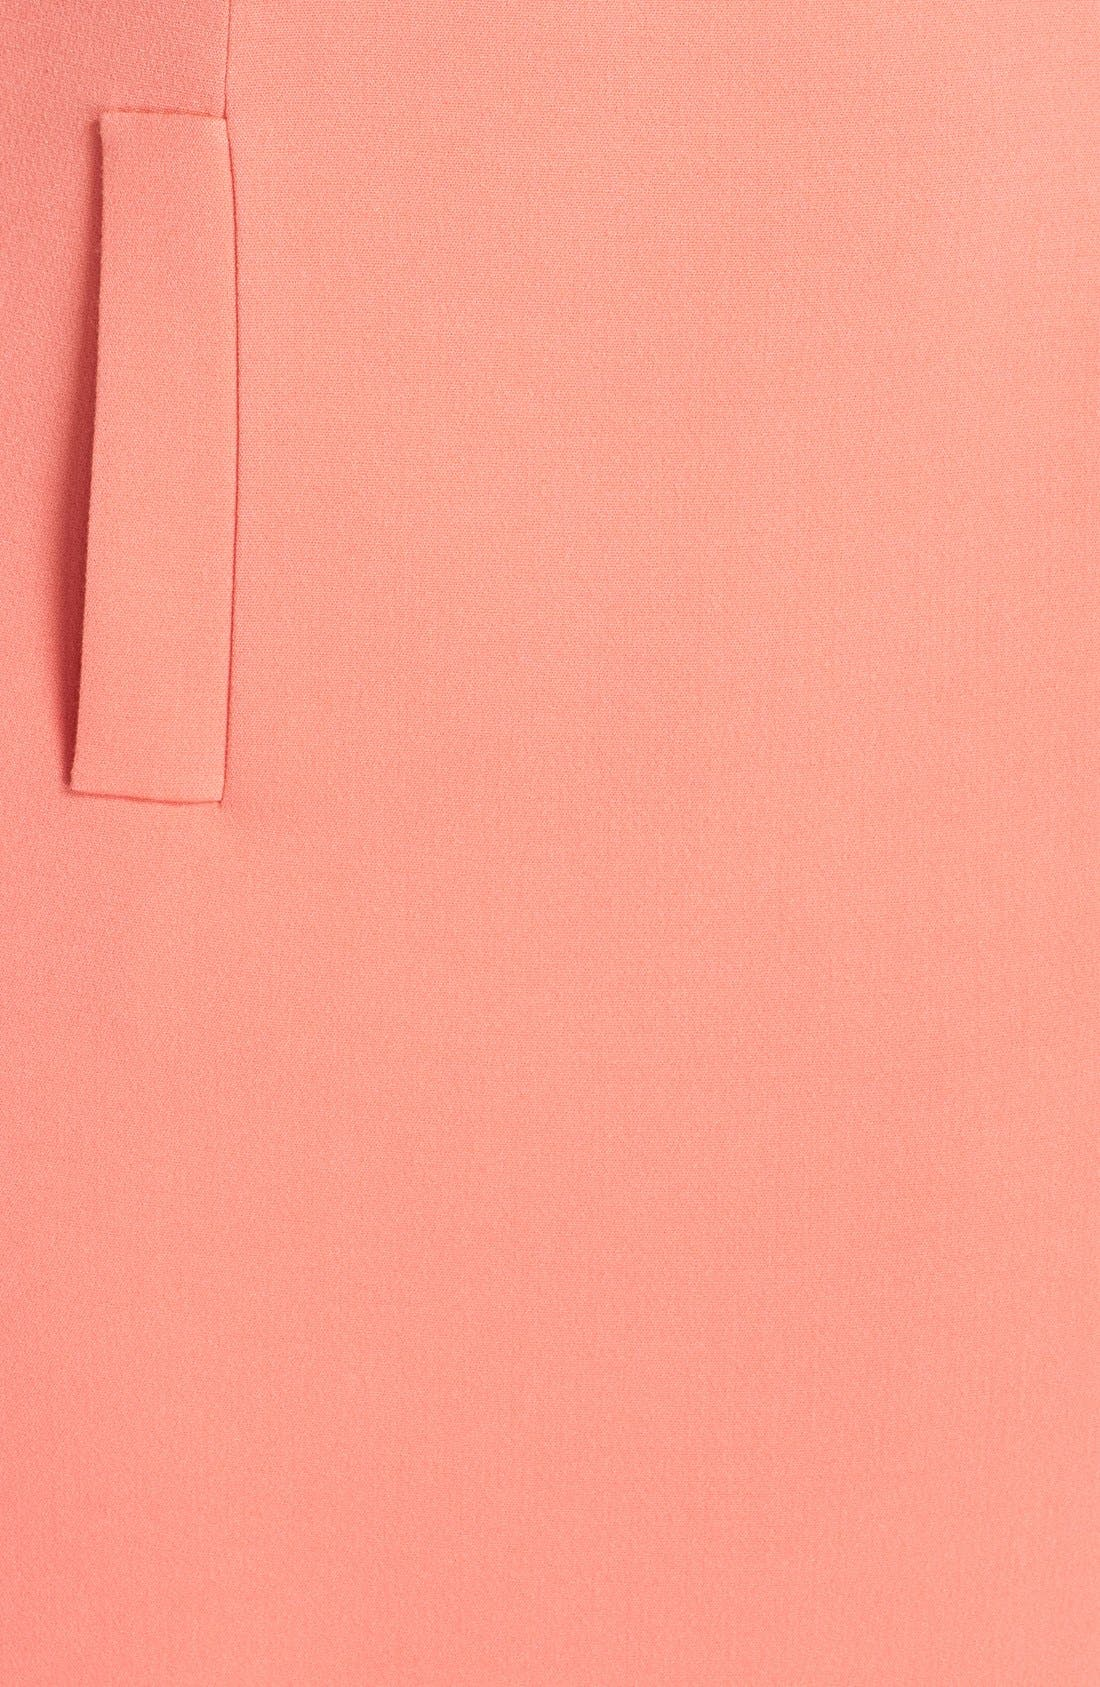 Pocket Detail Shift Dress,                             Alternate thumbnail 32, color,